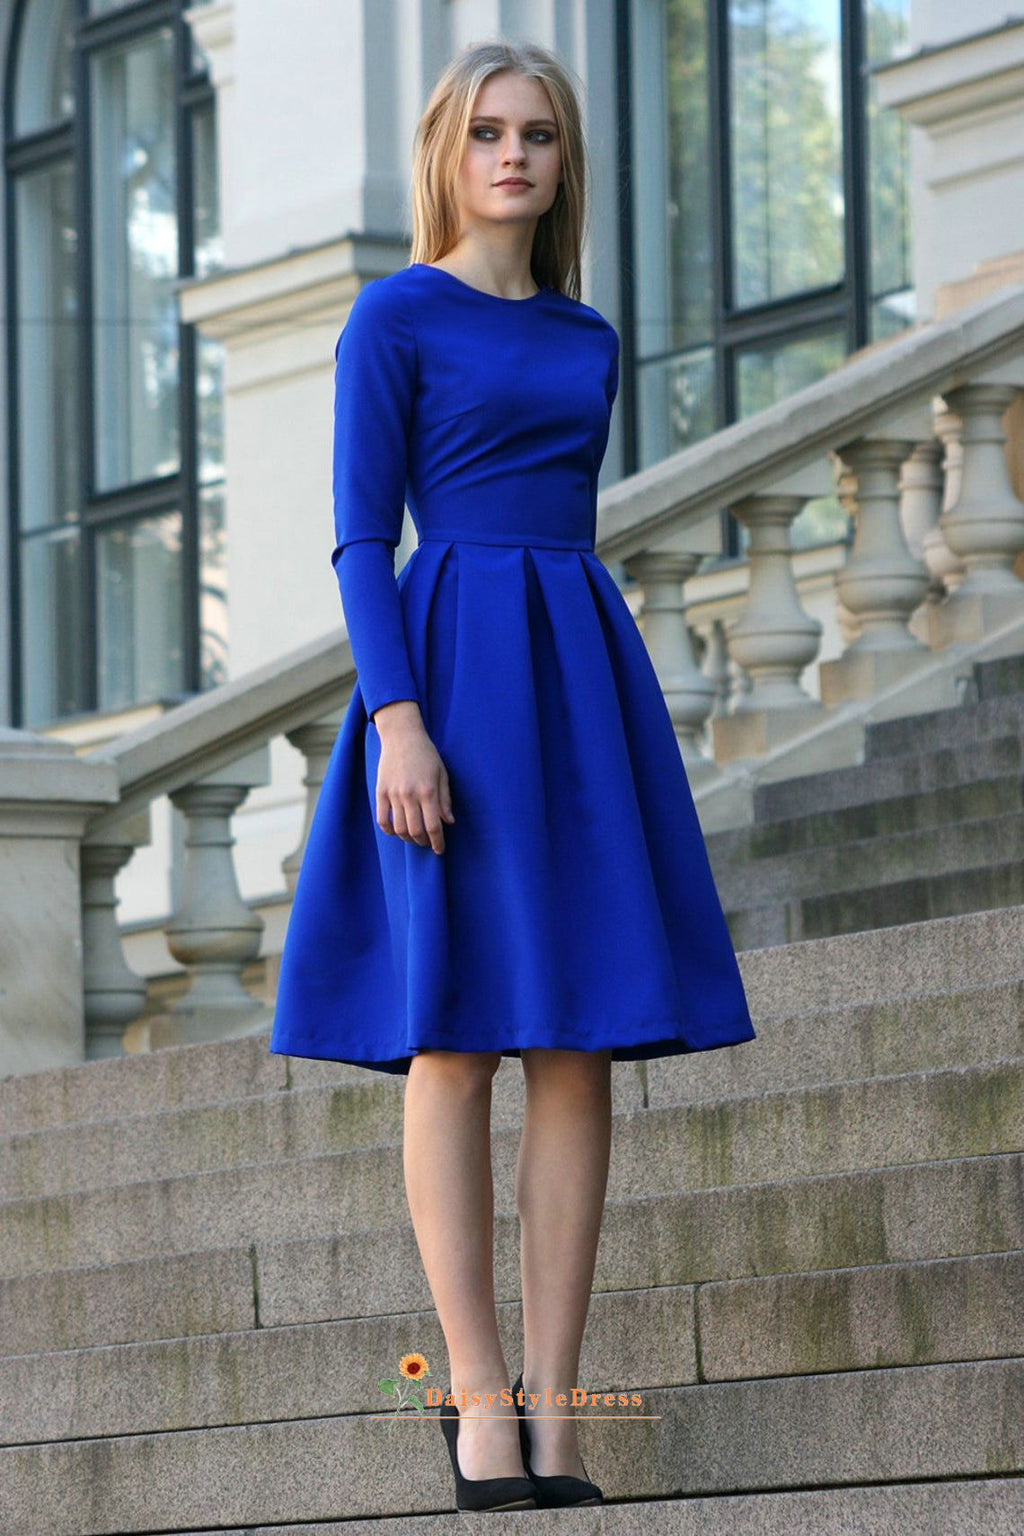 Long Sleeve Royal Blue Formal Party Dress